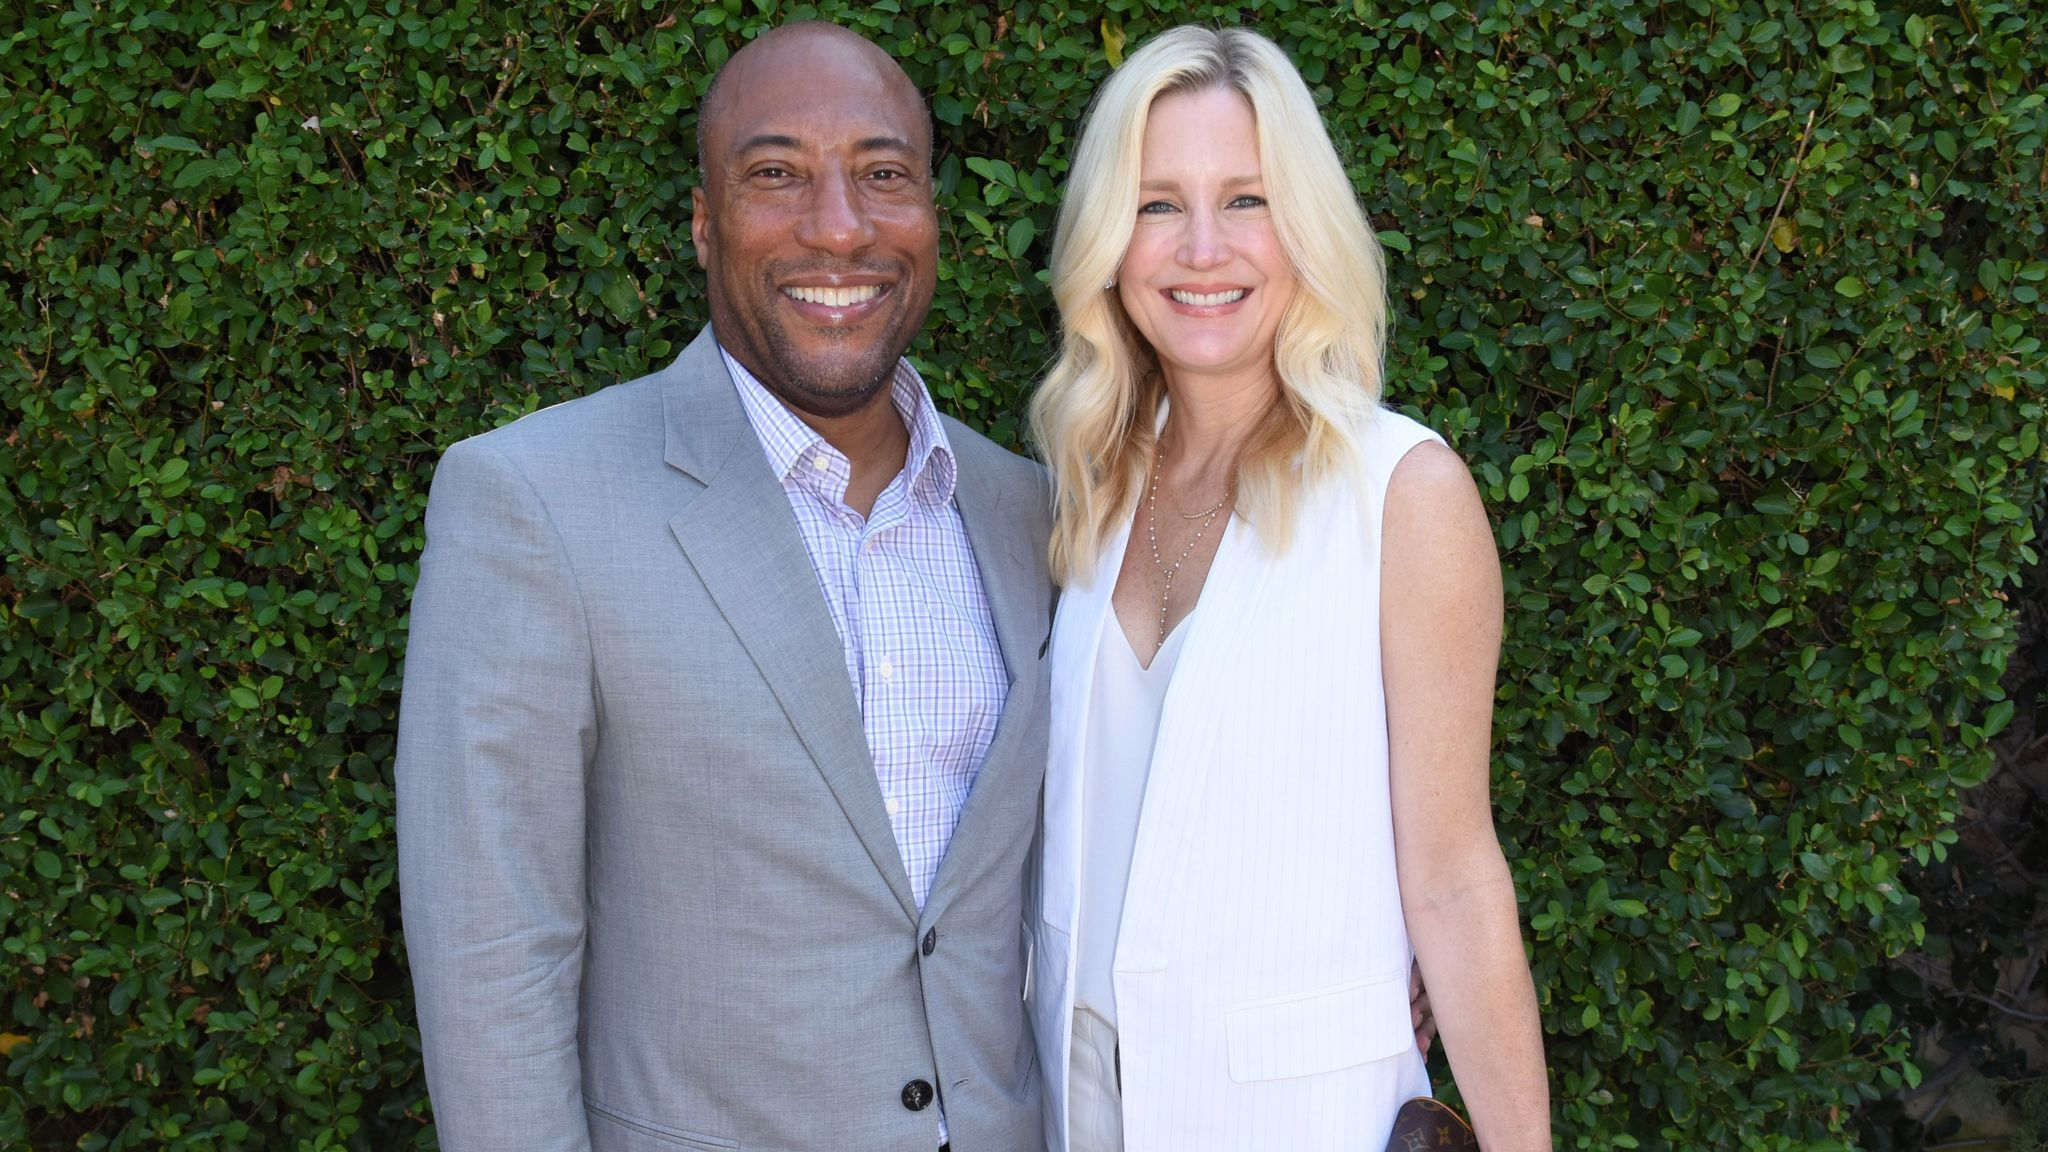 Byron Allen and Jennifer Lucas at the Rape Foundation's annual brunch on Sunday.